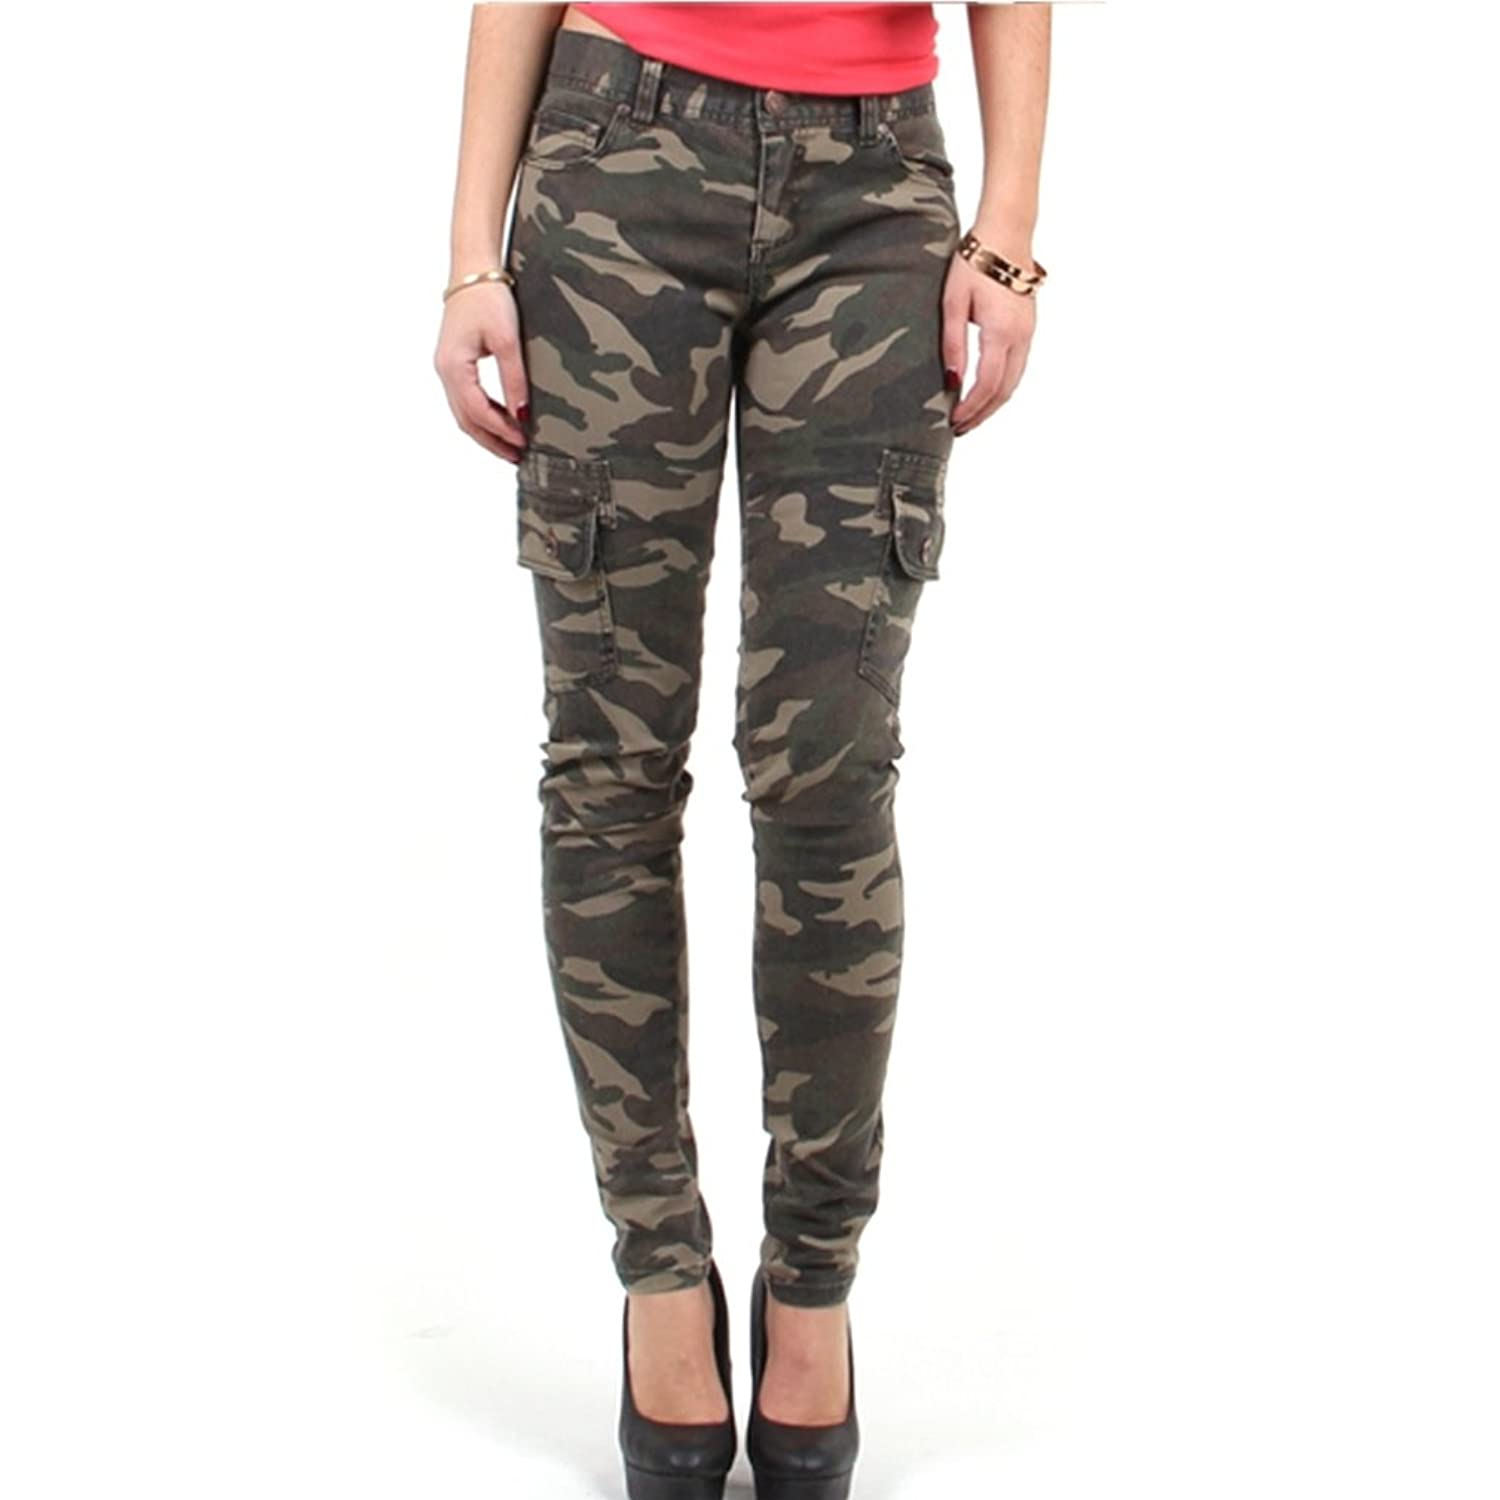 Red Fox Girls' Camo Skinny Cargo Pants Small Olive 348 at Amazon ...